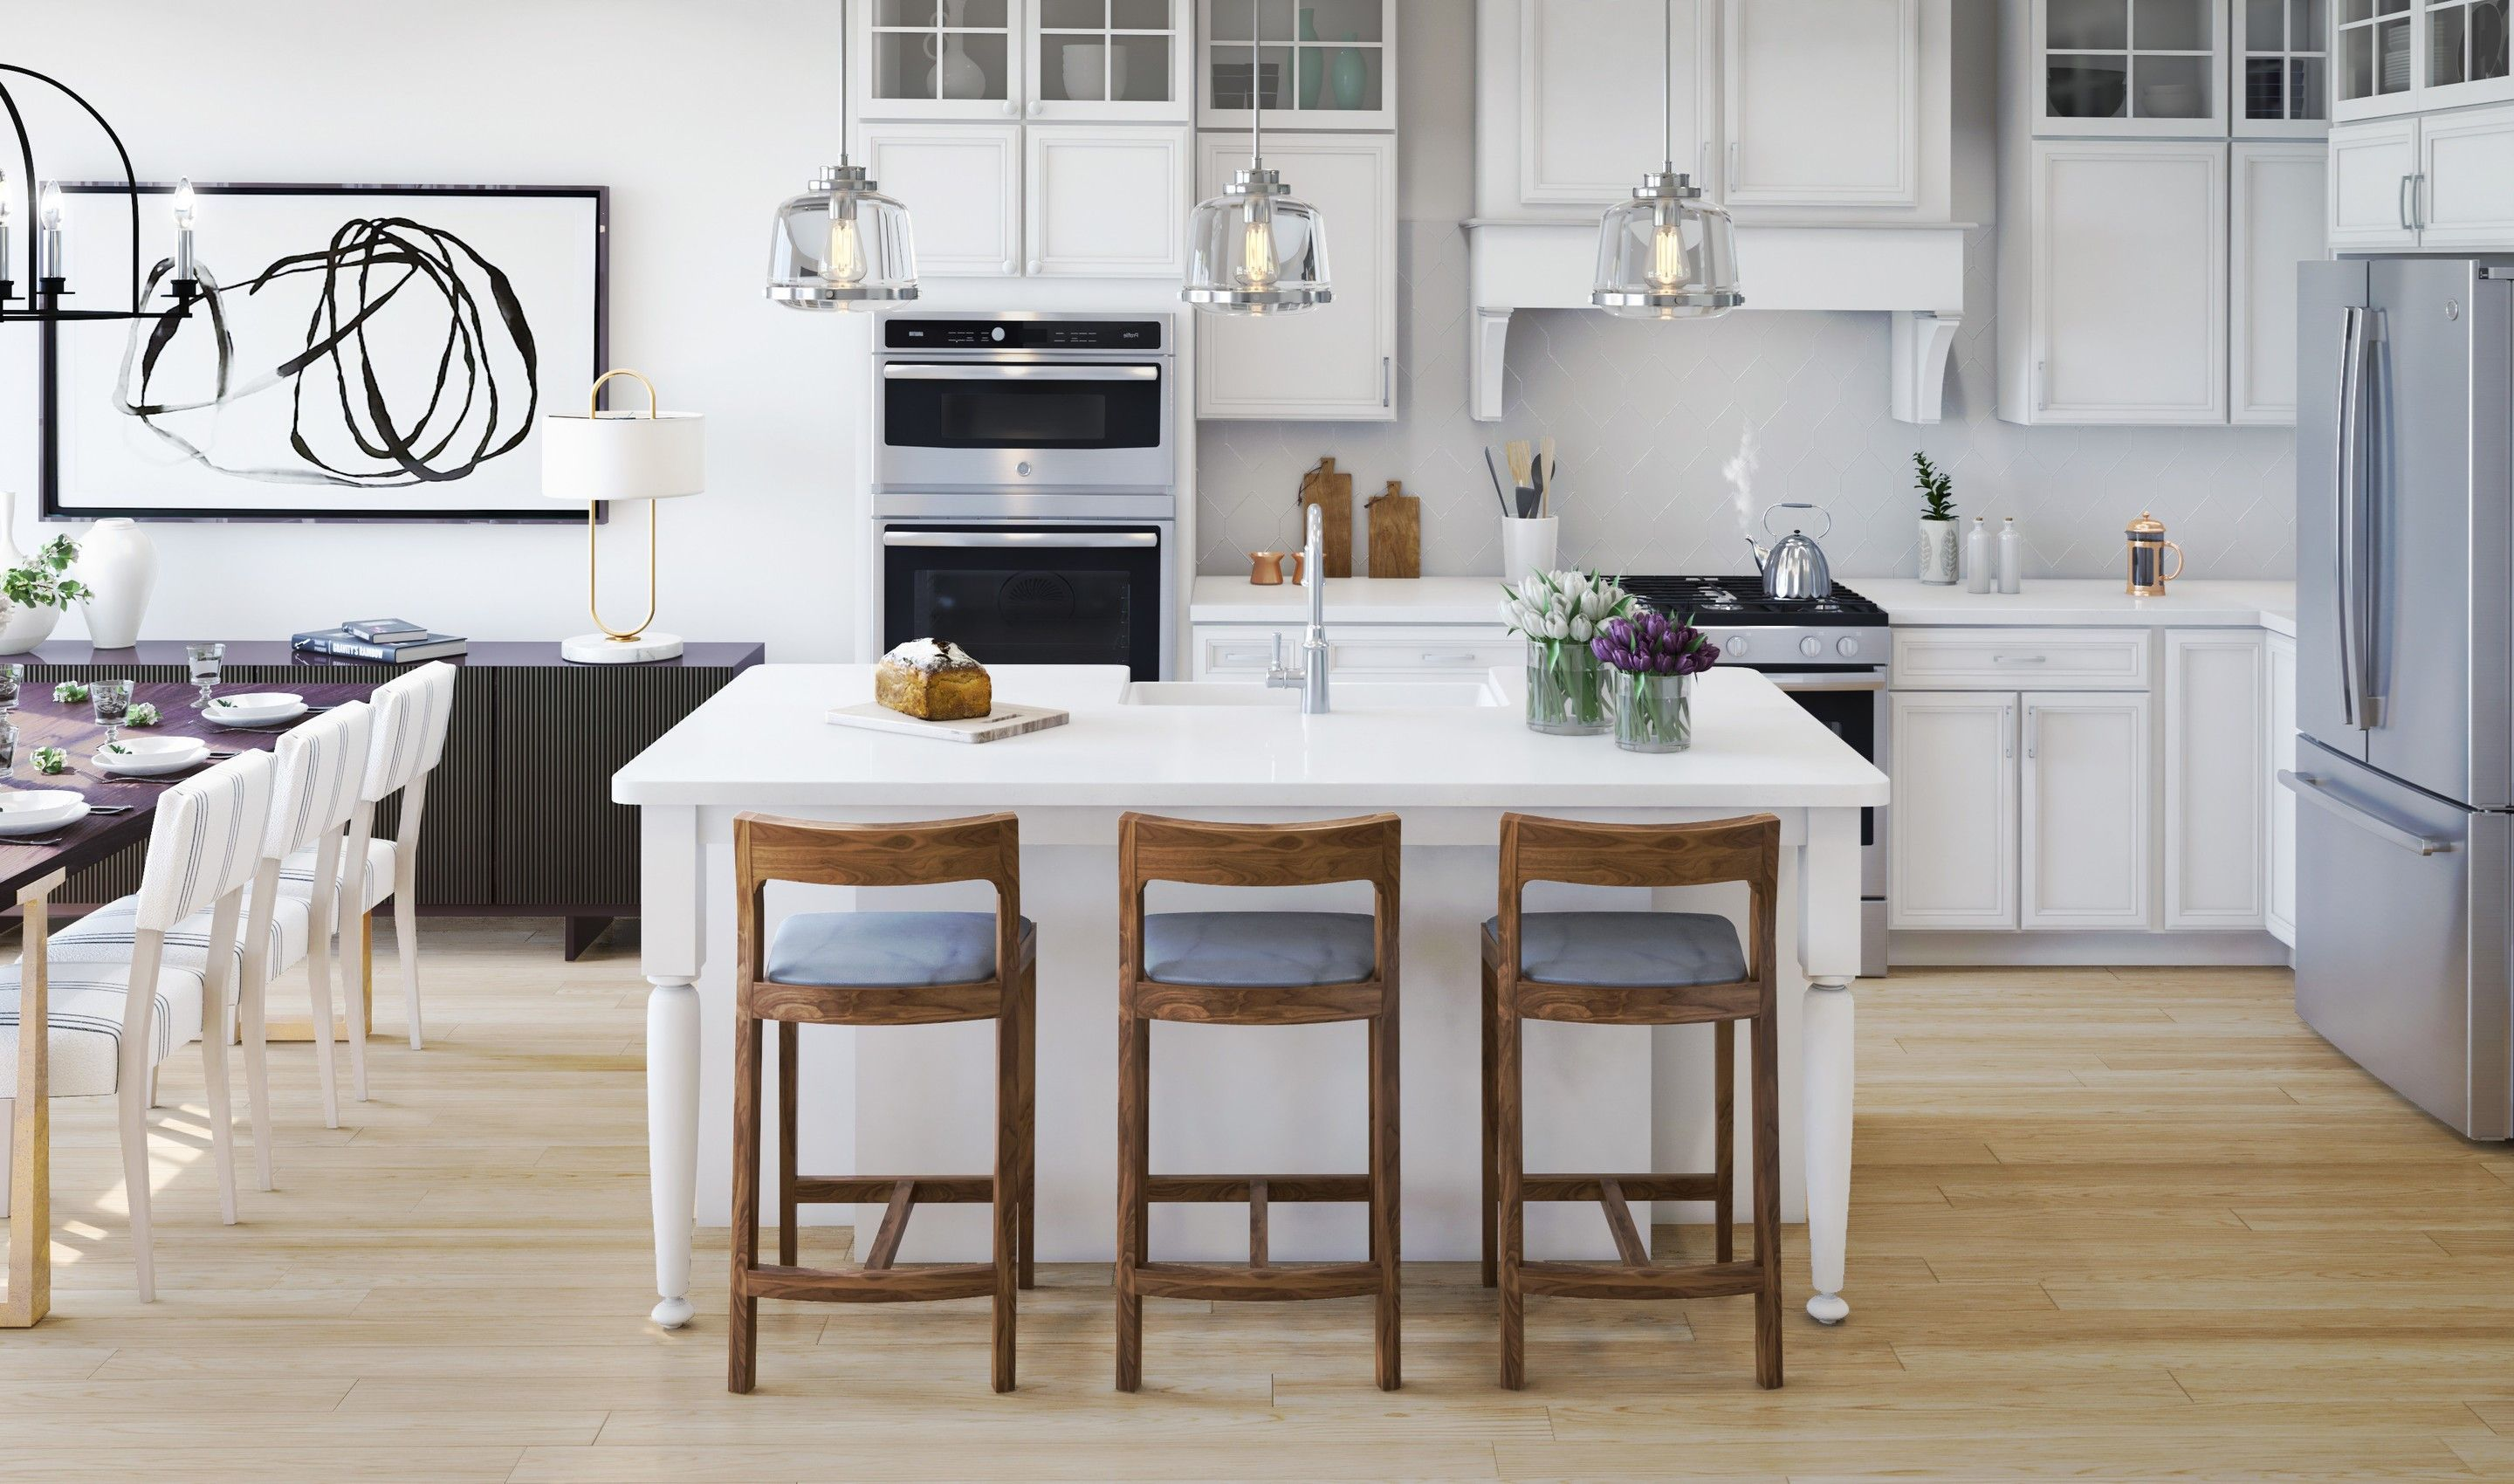 Kitchen featured in the Bryn Mawr By K. Hovnanian® Homes in Middlesex County, NJ